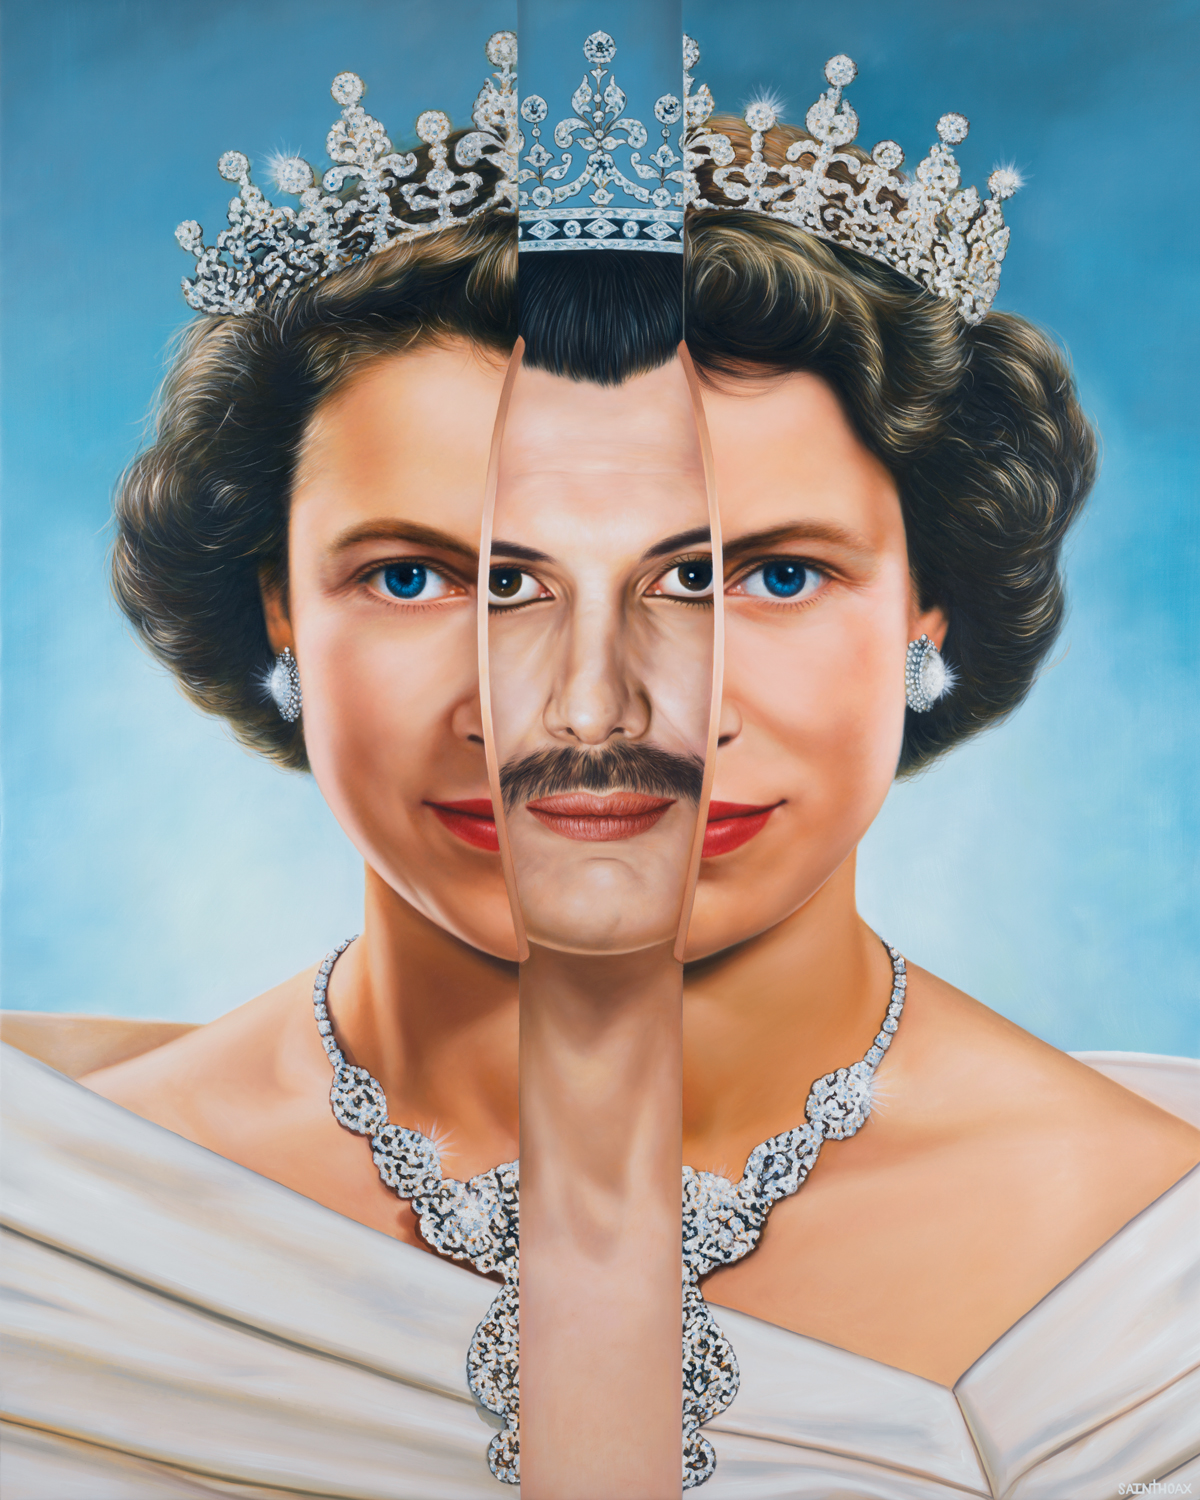 GOD SAVE THE QUEENS - 2018Oil on canvas120 x 150 cm ( 47.2 x 59 in)$42,000